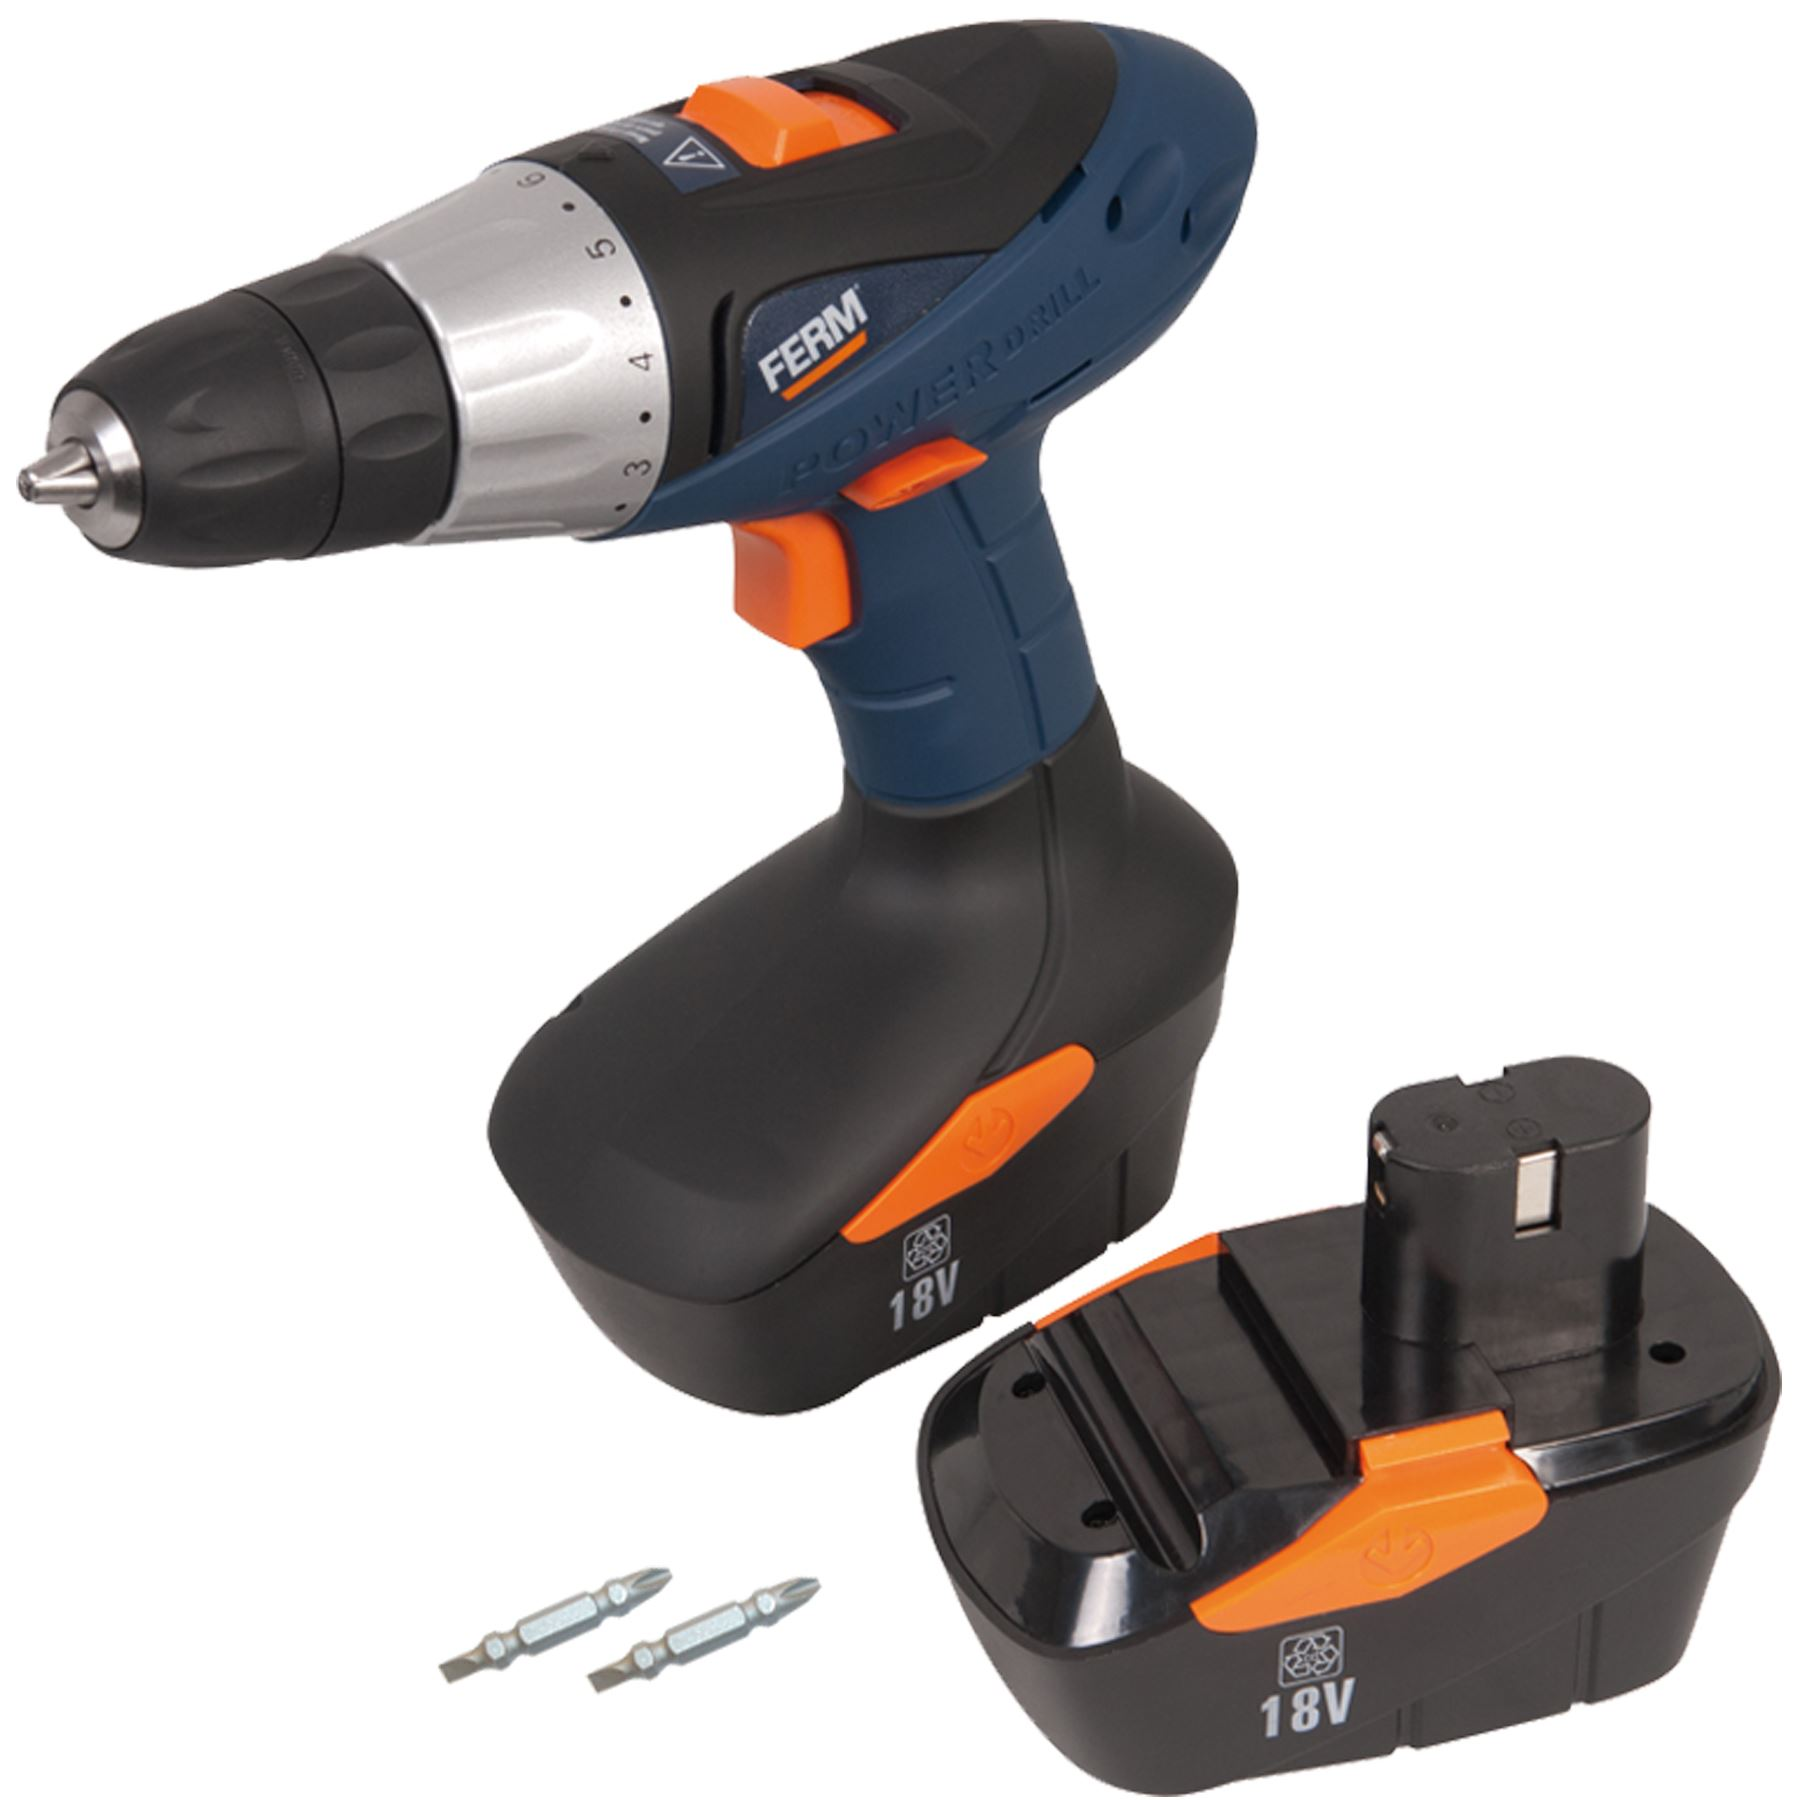 Ferm Power 18v Cordless Drill With Bundled Items Variable Speed Free Delivery